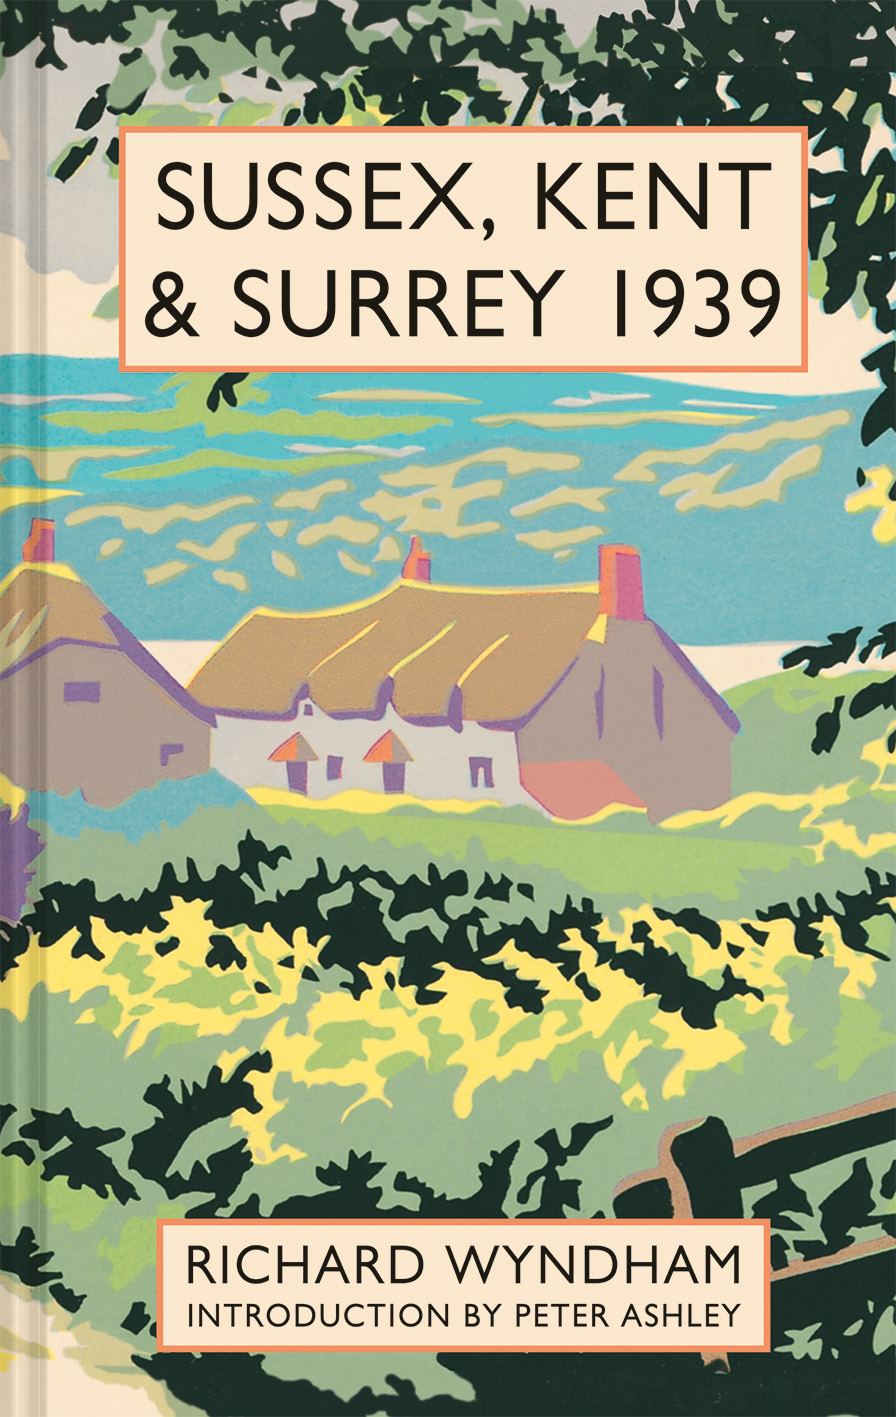 Sussex, Kent and Surrey 1939